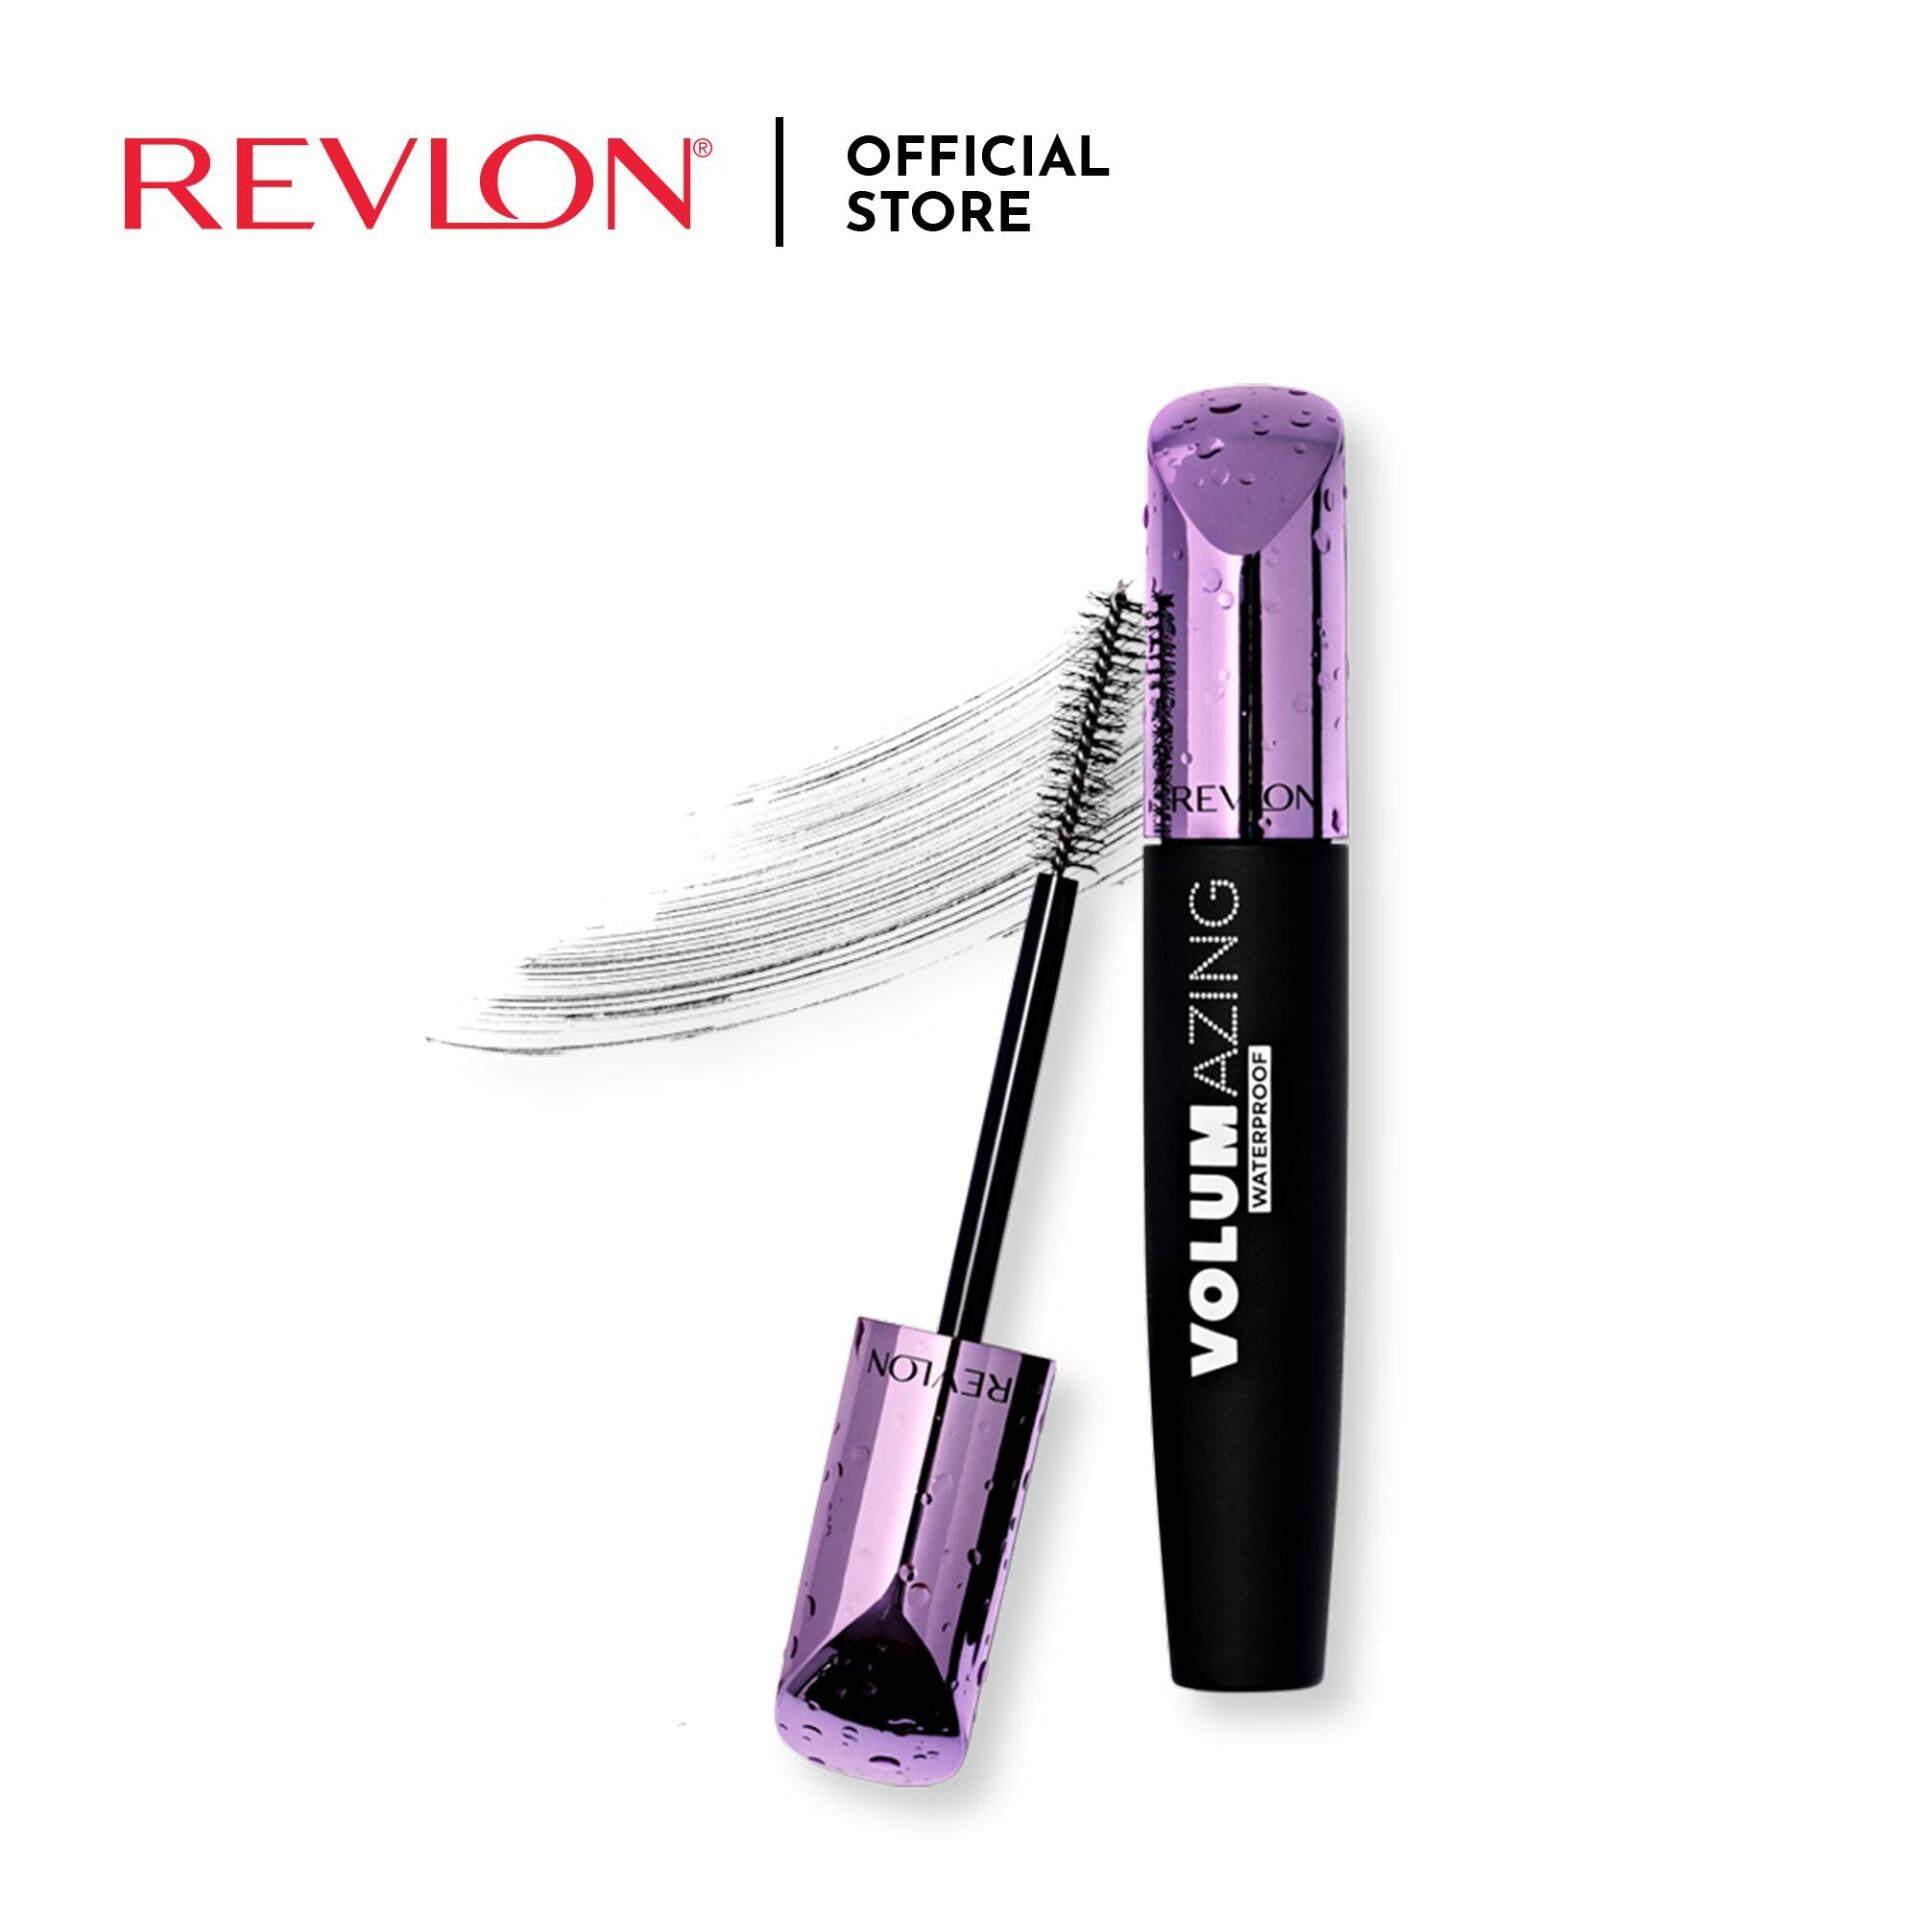 Revlon Volumazing Mascara -951 Blackest Black Waterproof